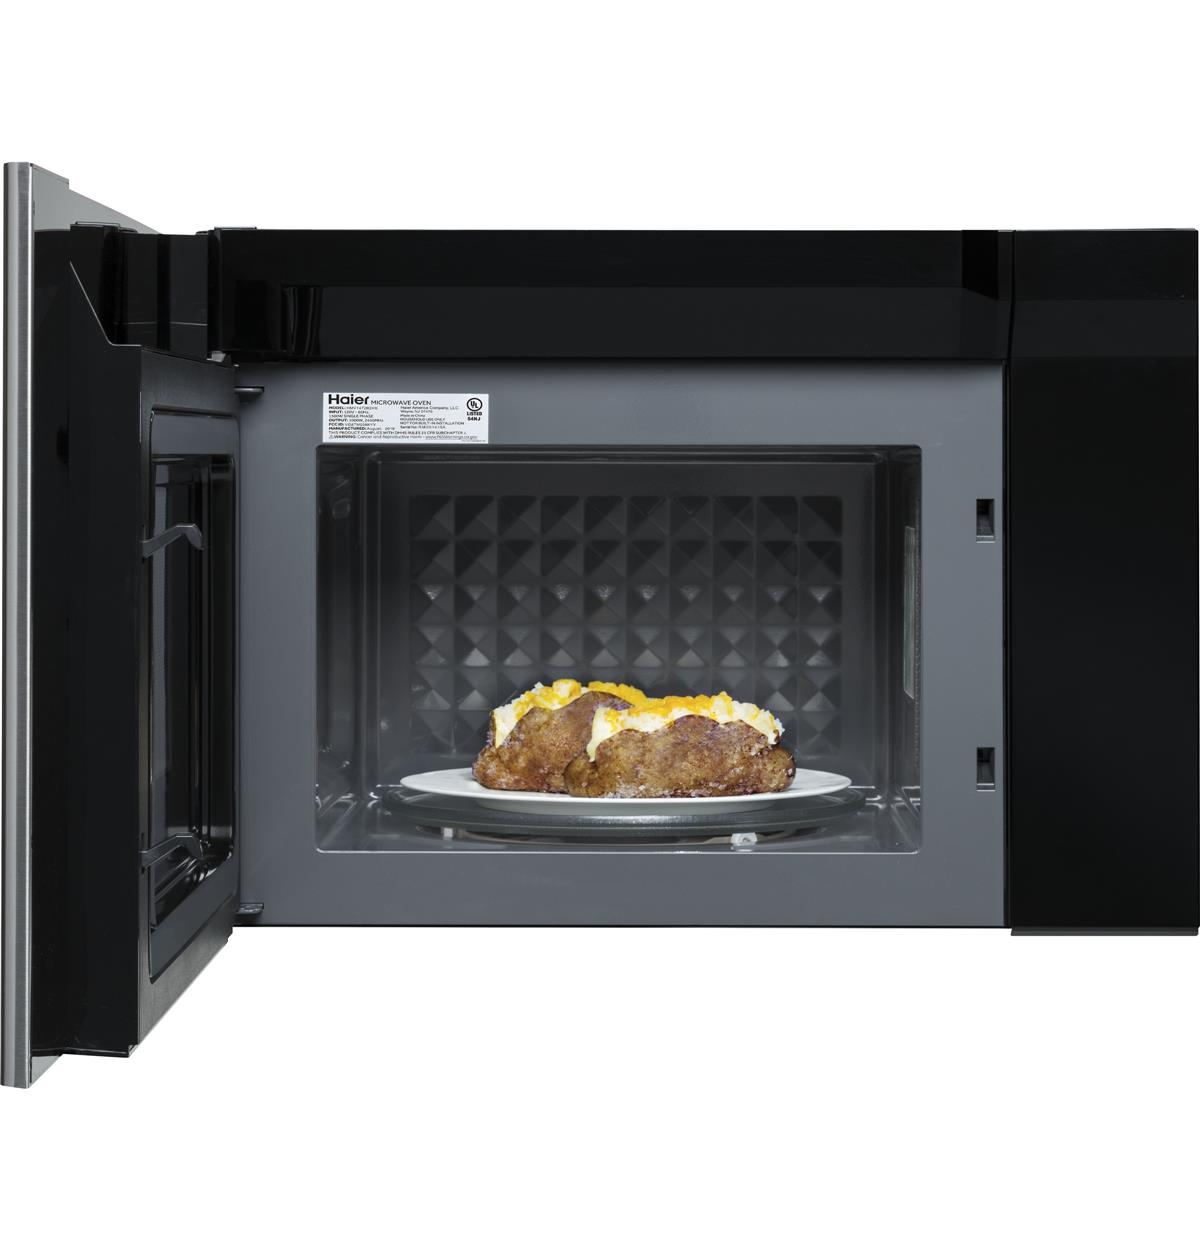 12 Inch High Over The Range Microwave Oven Bestmicrowave